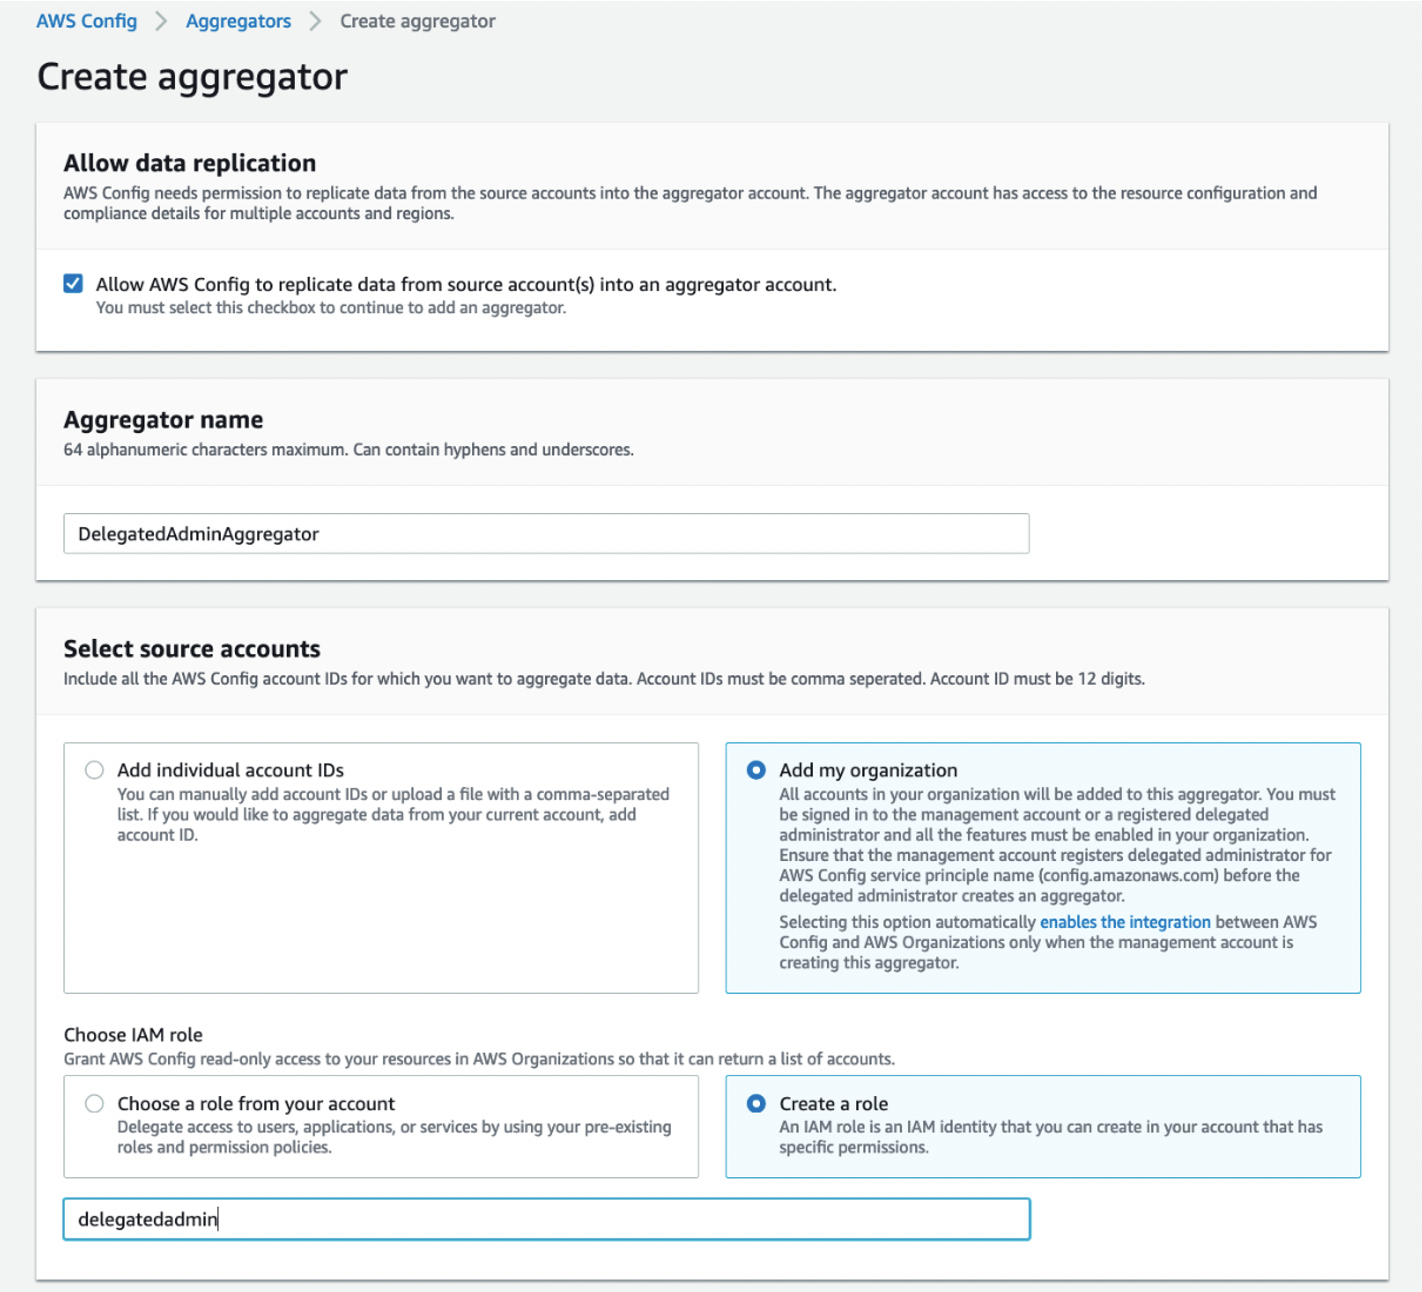 Create aggregator page displays fields selected and completed as described in the body of the post.